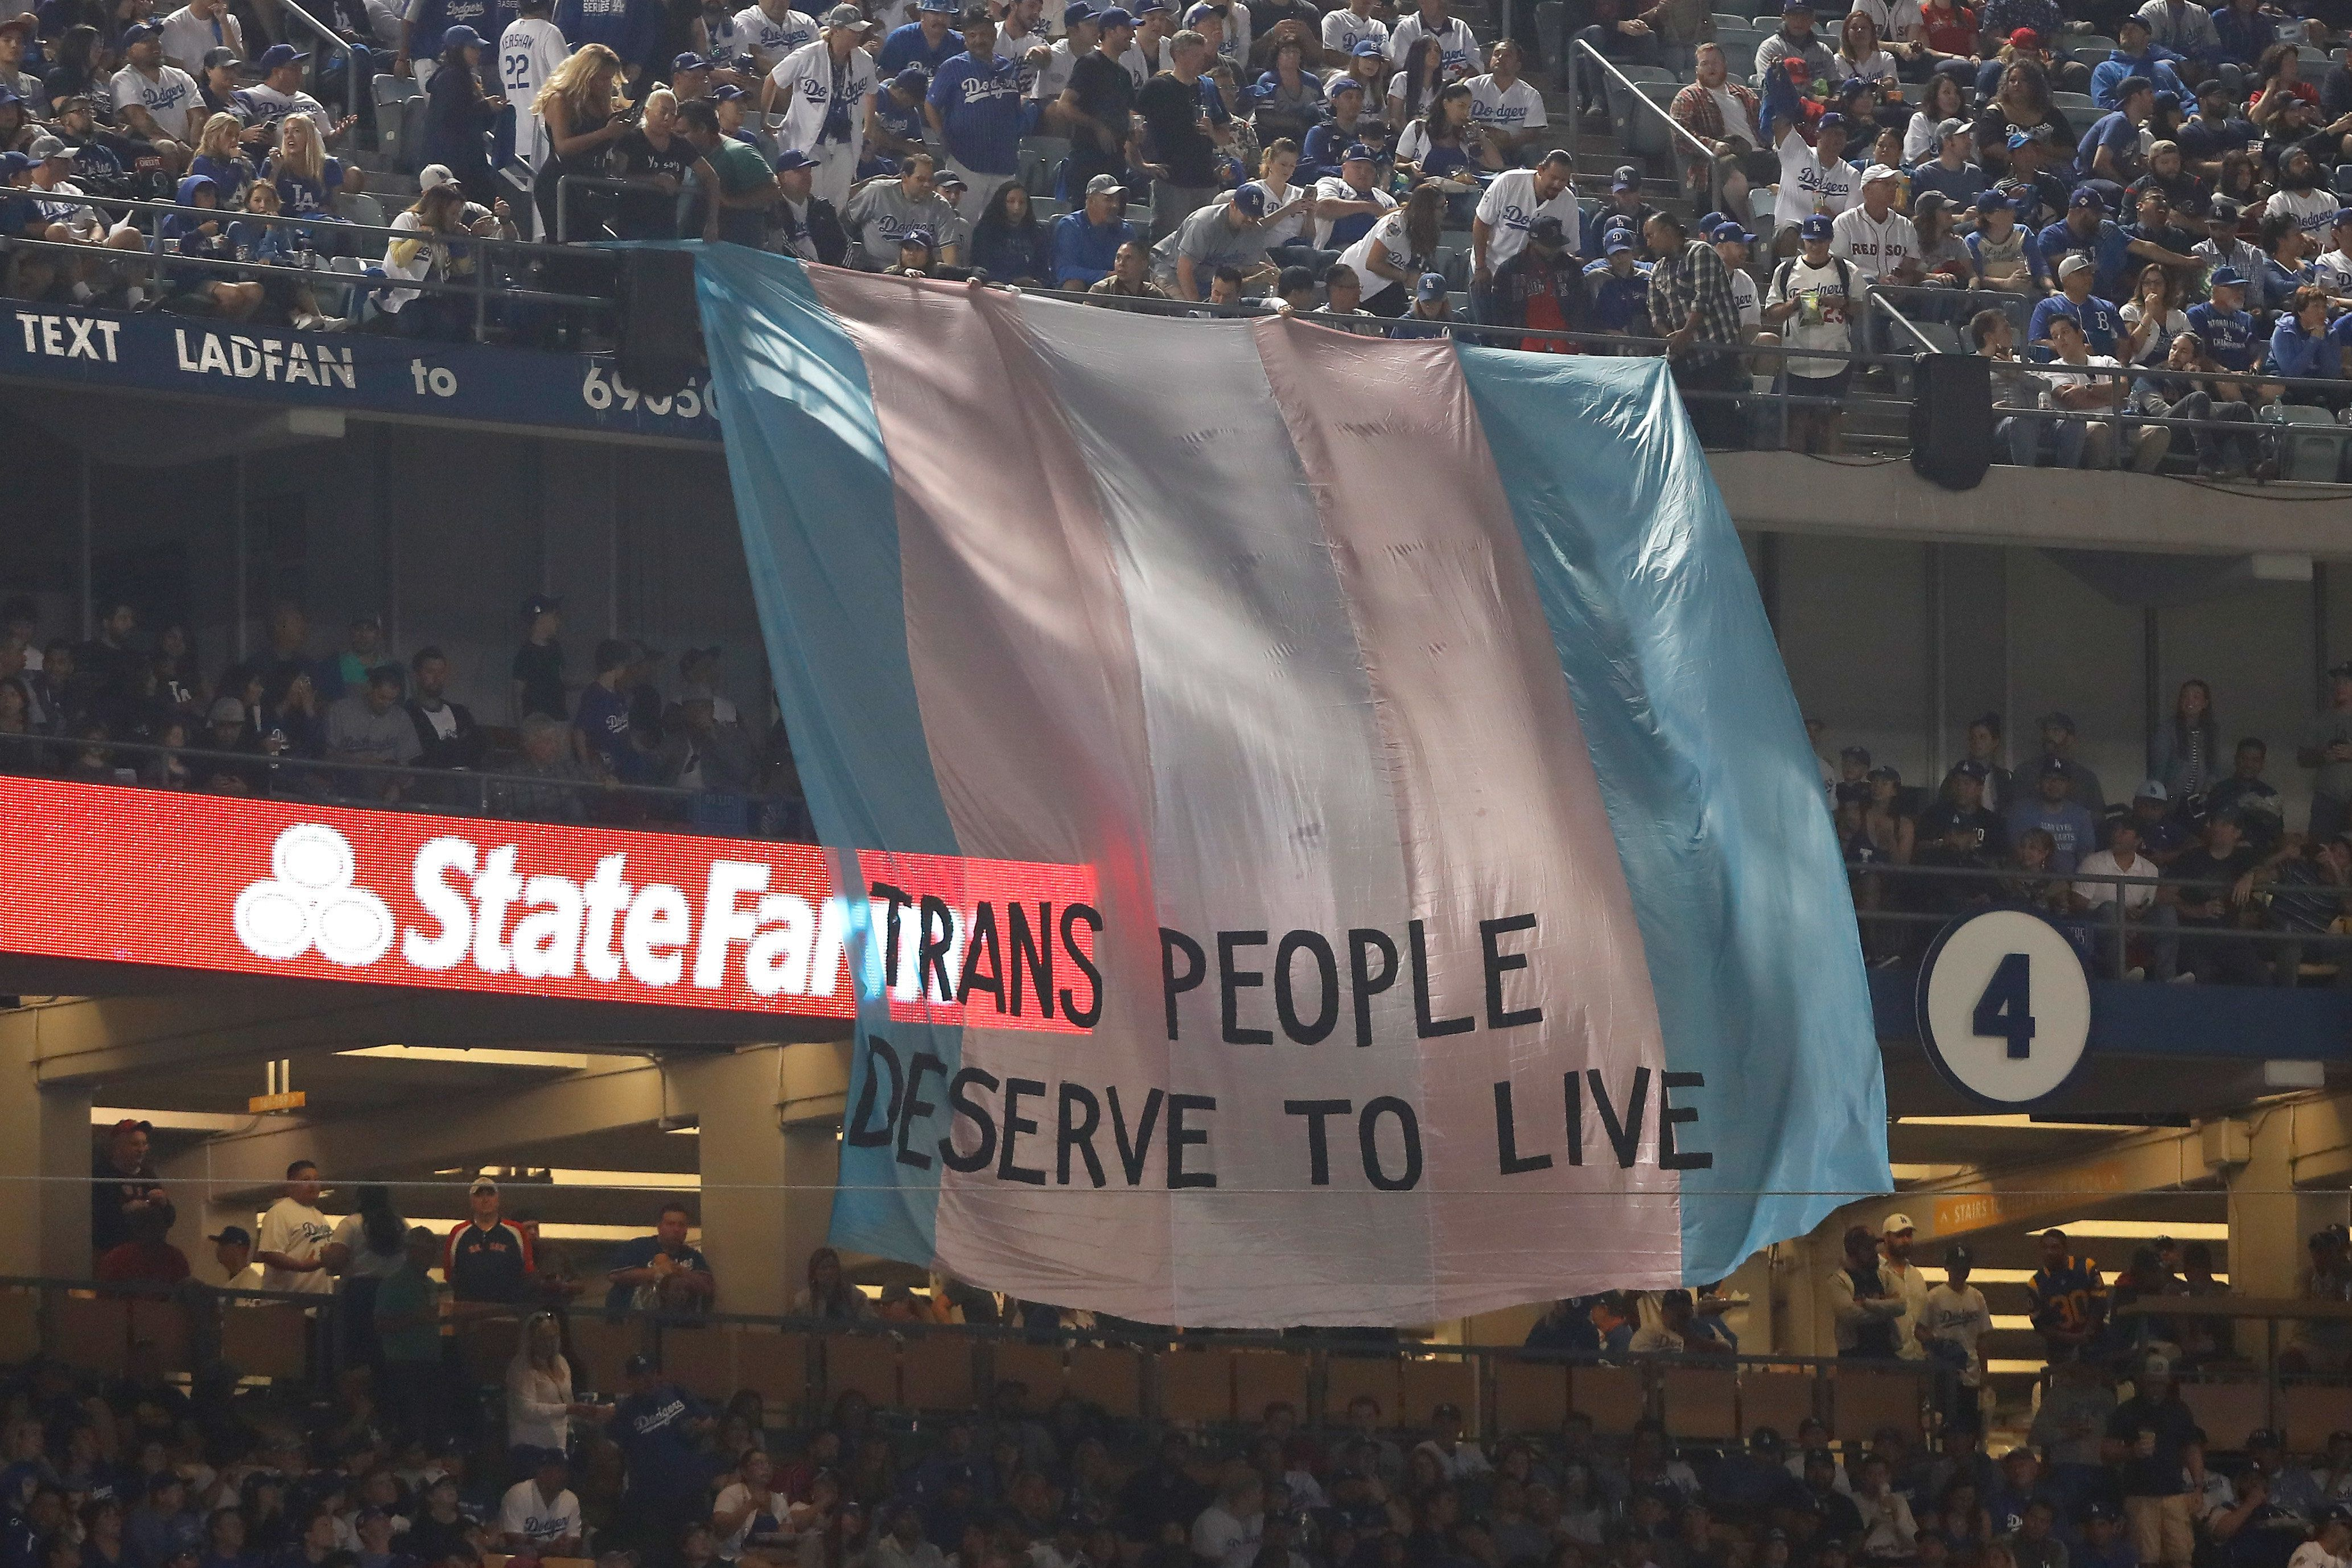 A banner with the words 'Trans People Deserve to Live' is displayed during Game Five of the 2018 World Series bet